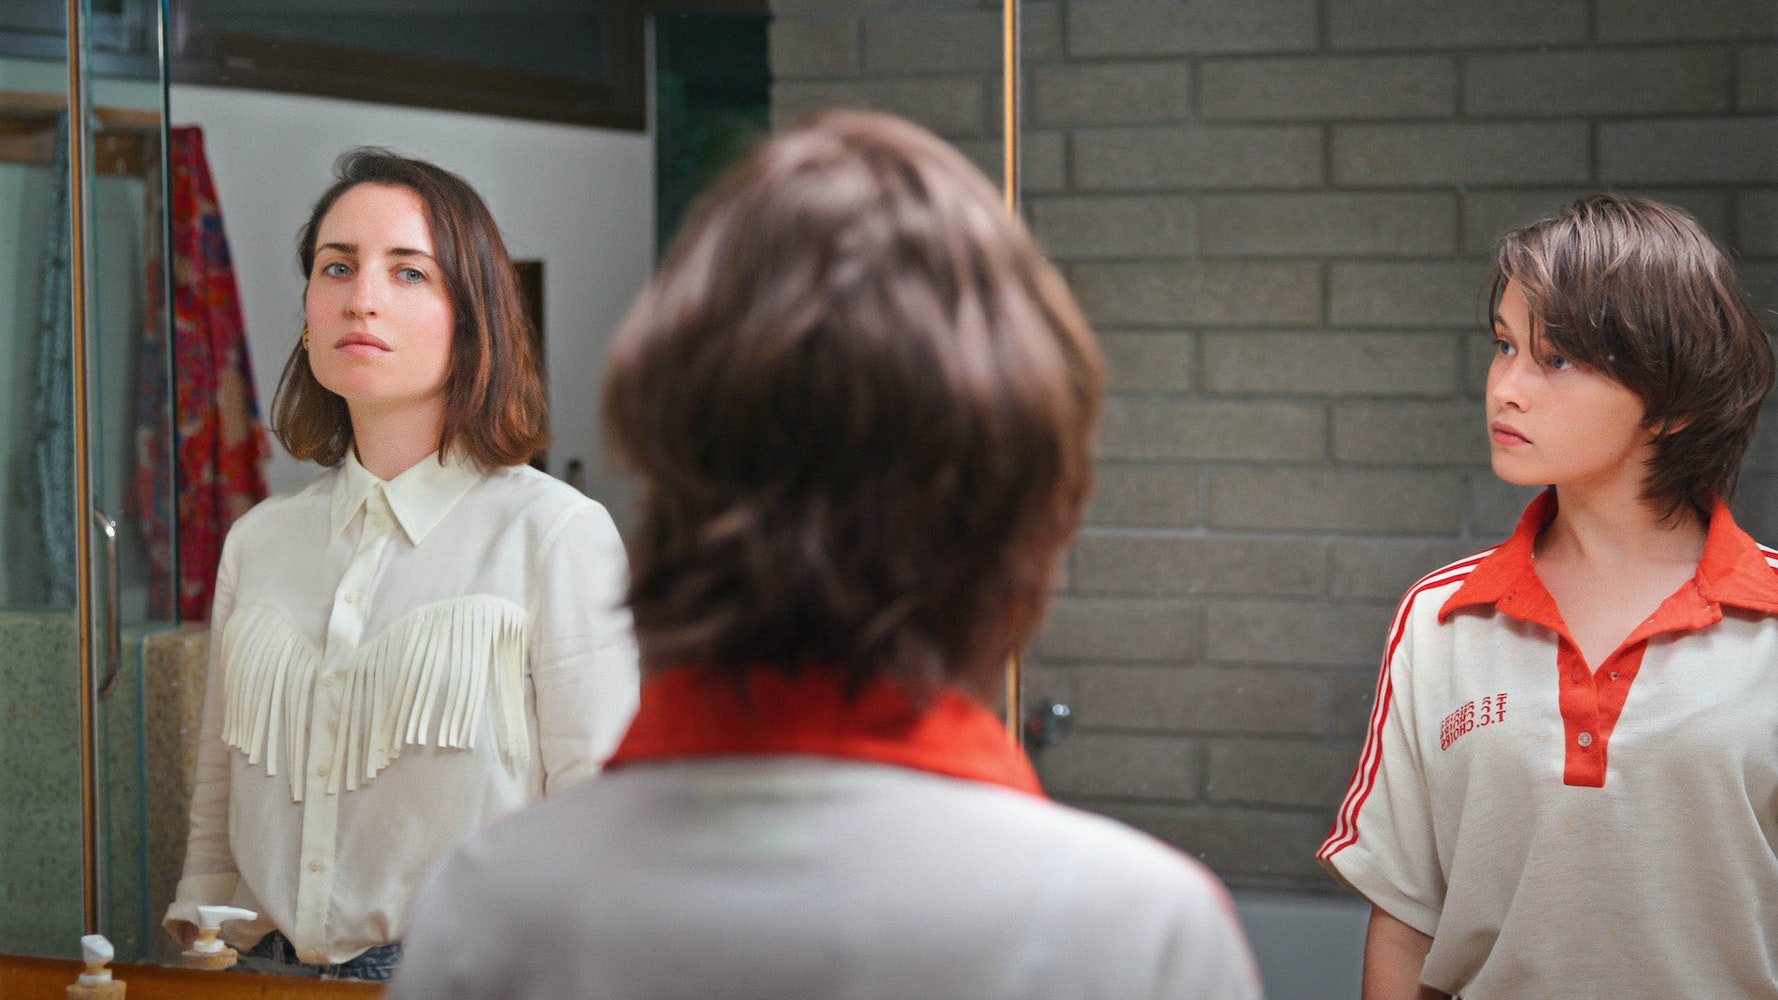 two women look at each other in front of mirror